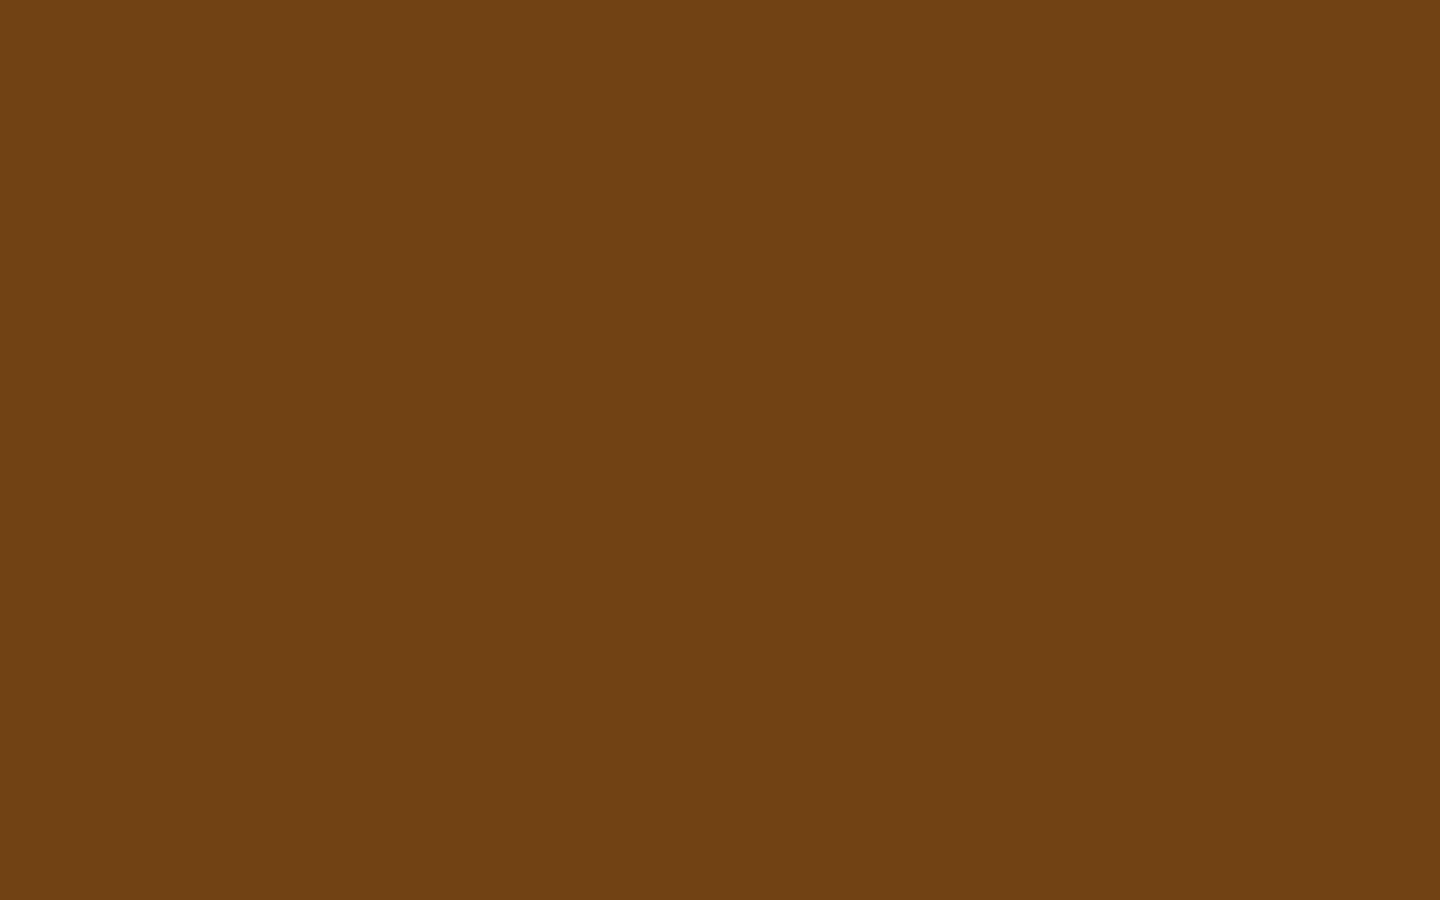 1440x900 Sepia Solid Color Background